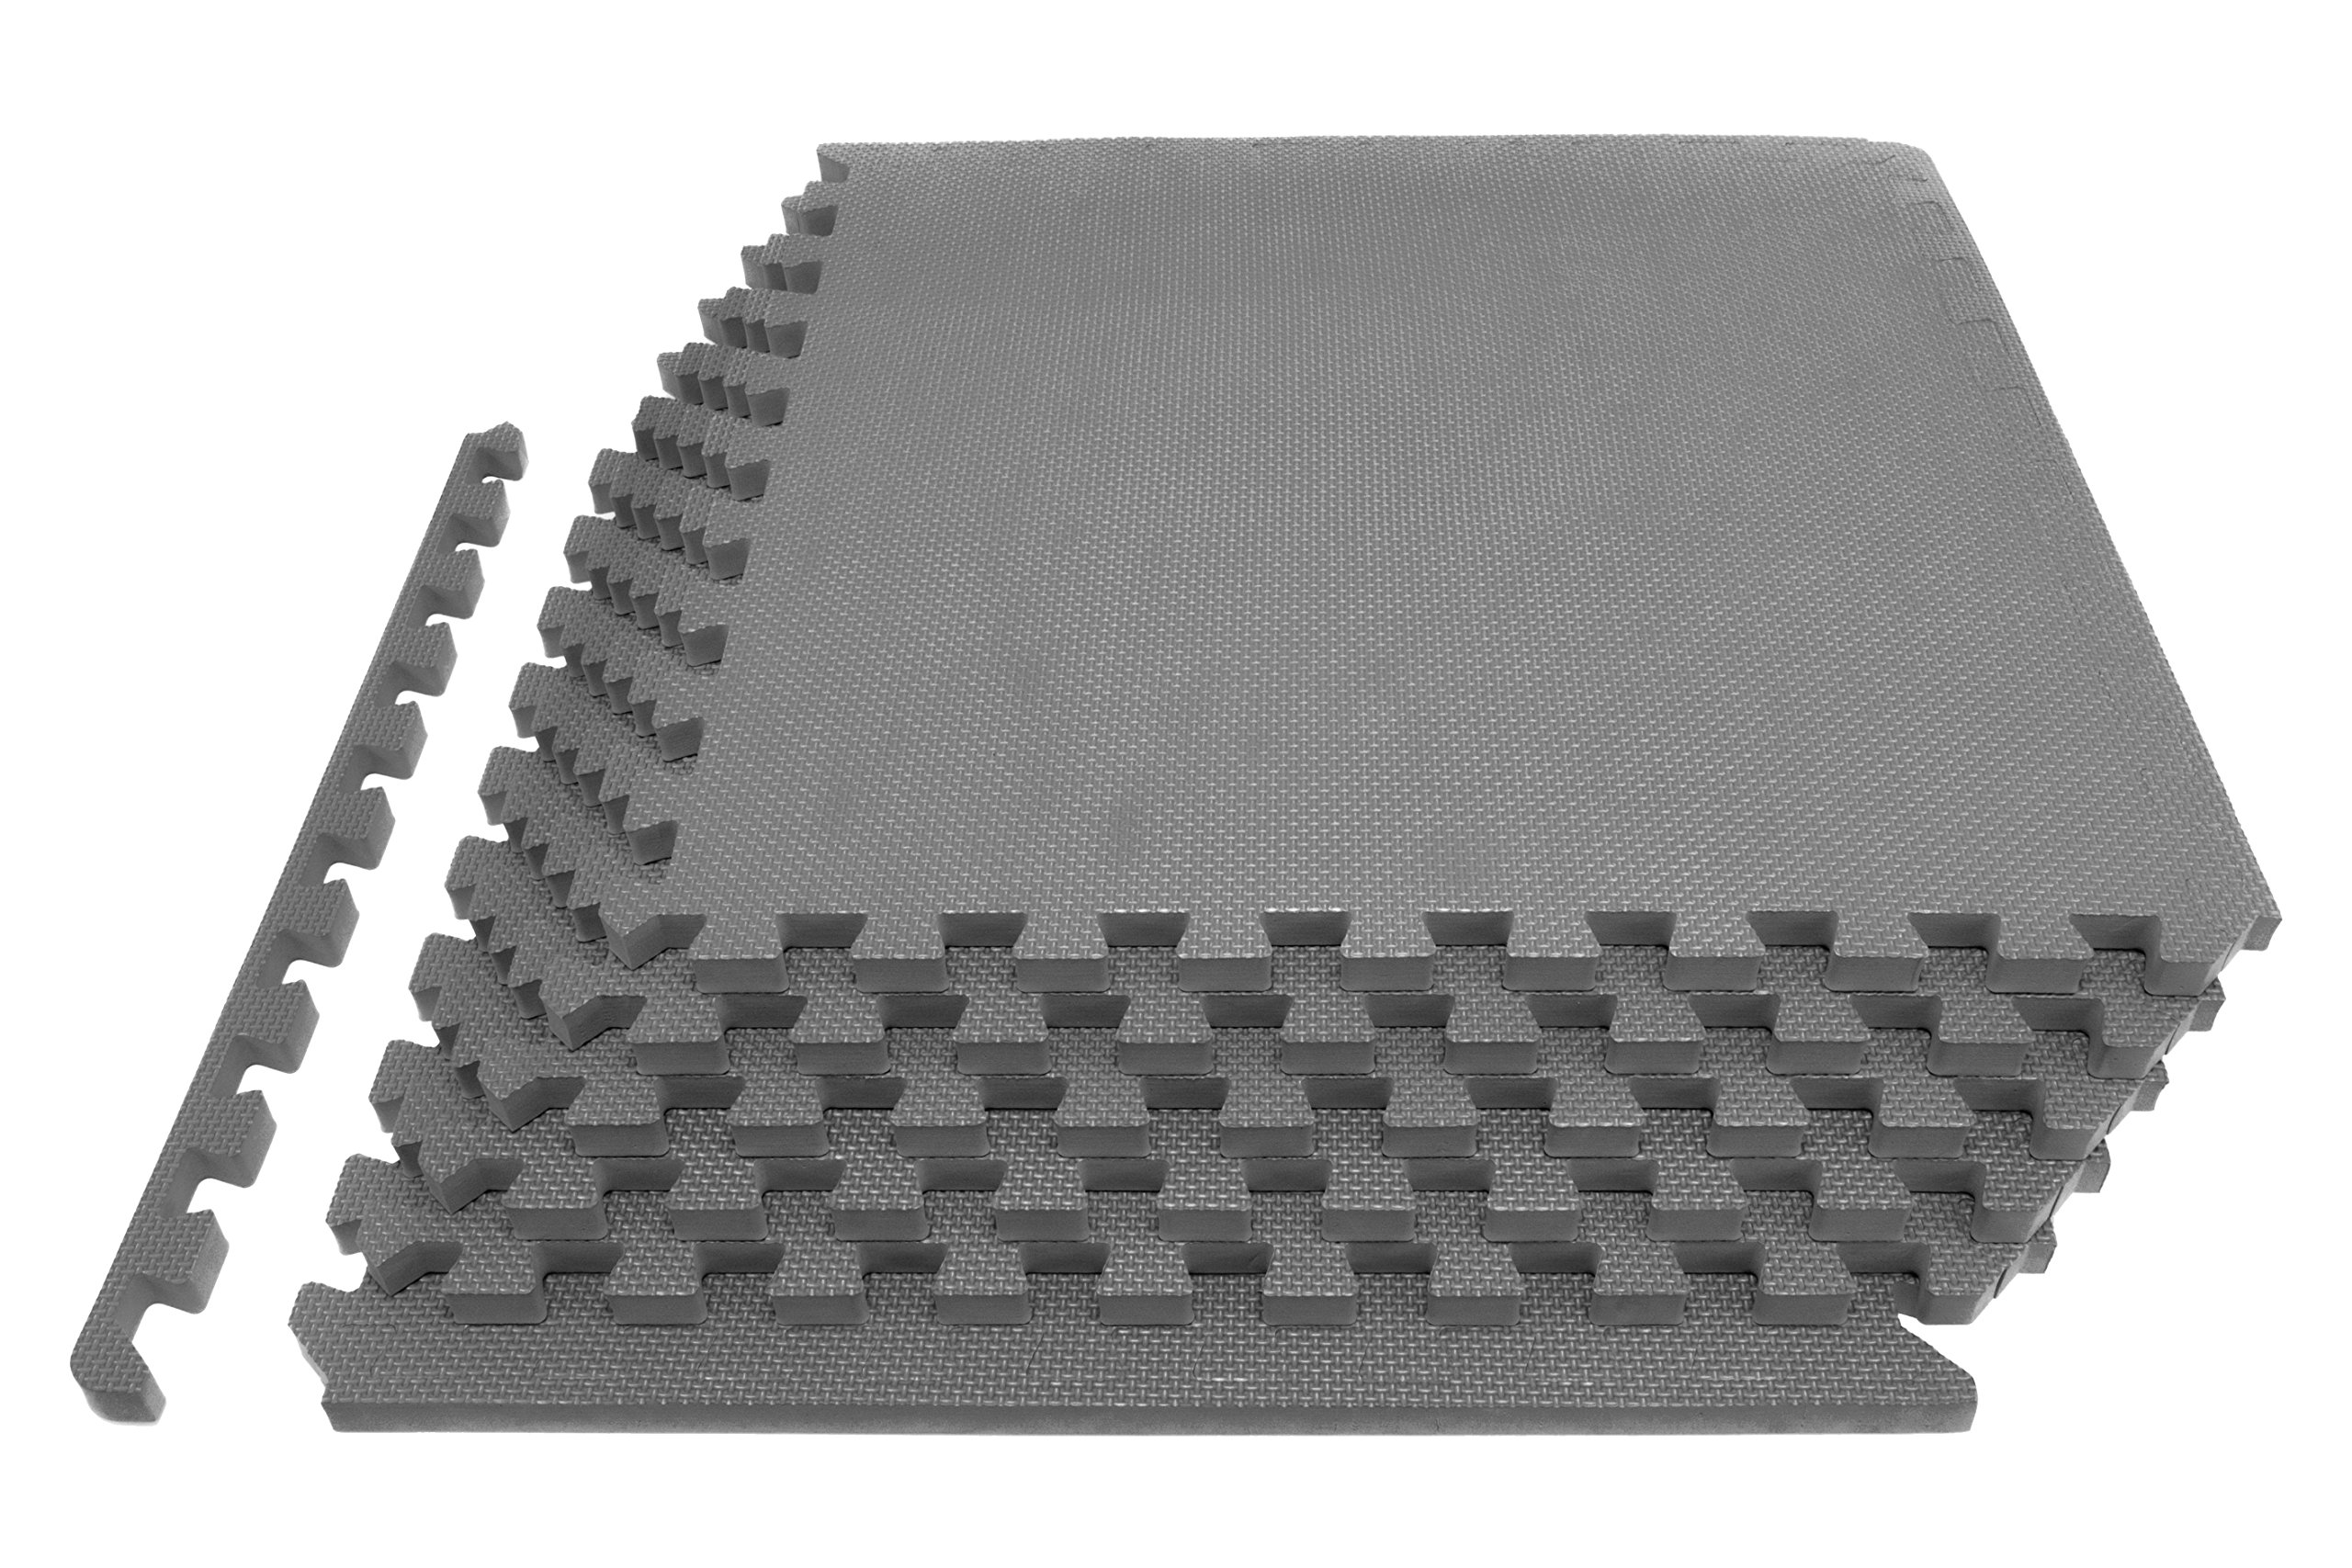 Prosource Fit Extra Thick Puzzle Exercise Mat 3/4 by ProsourceFit